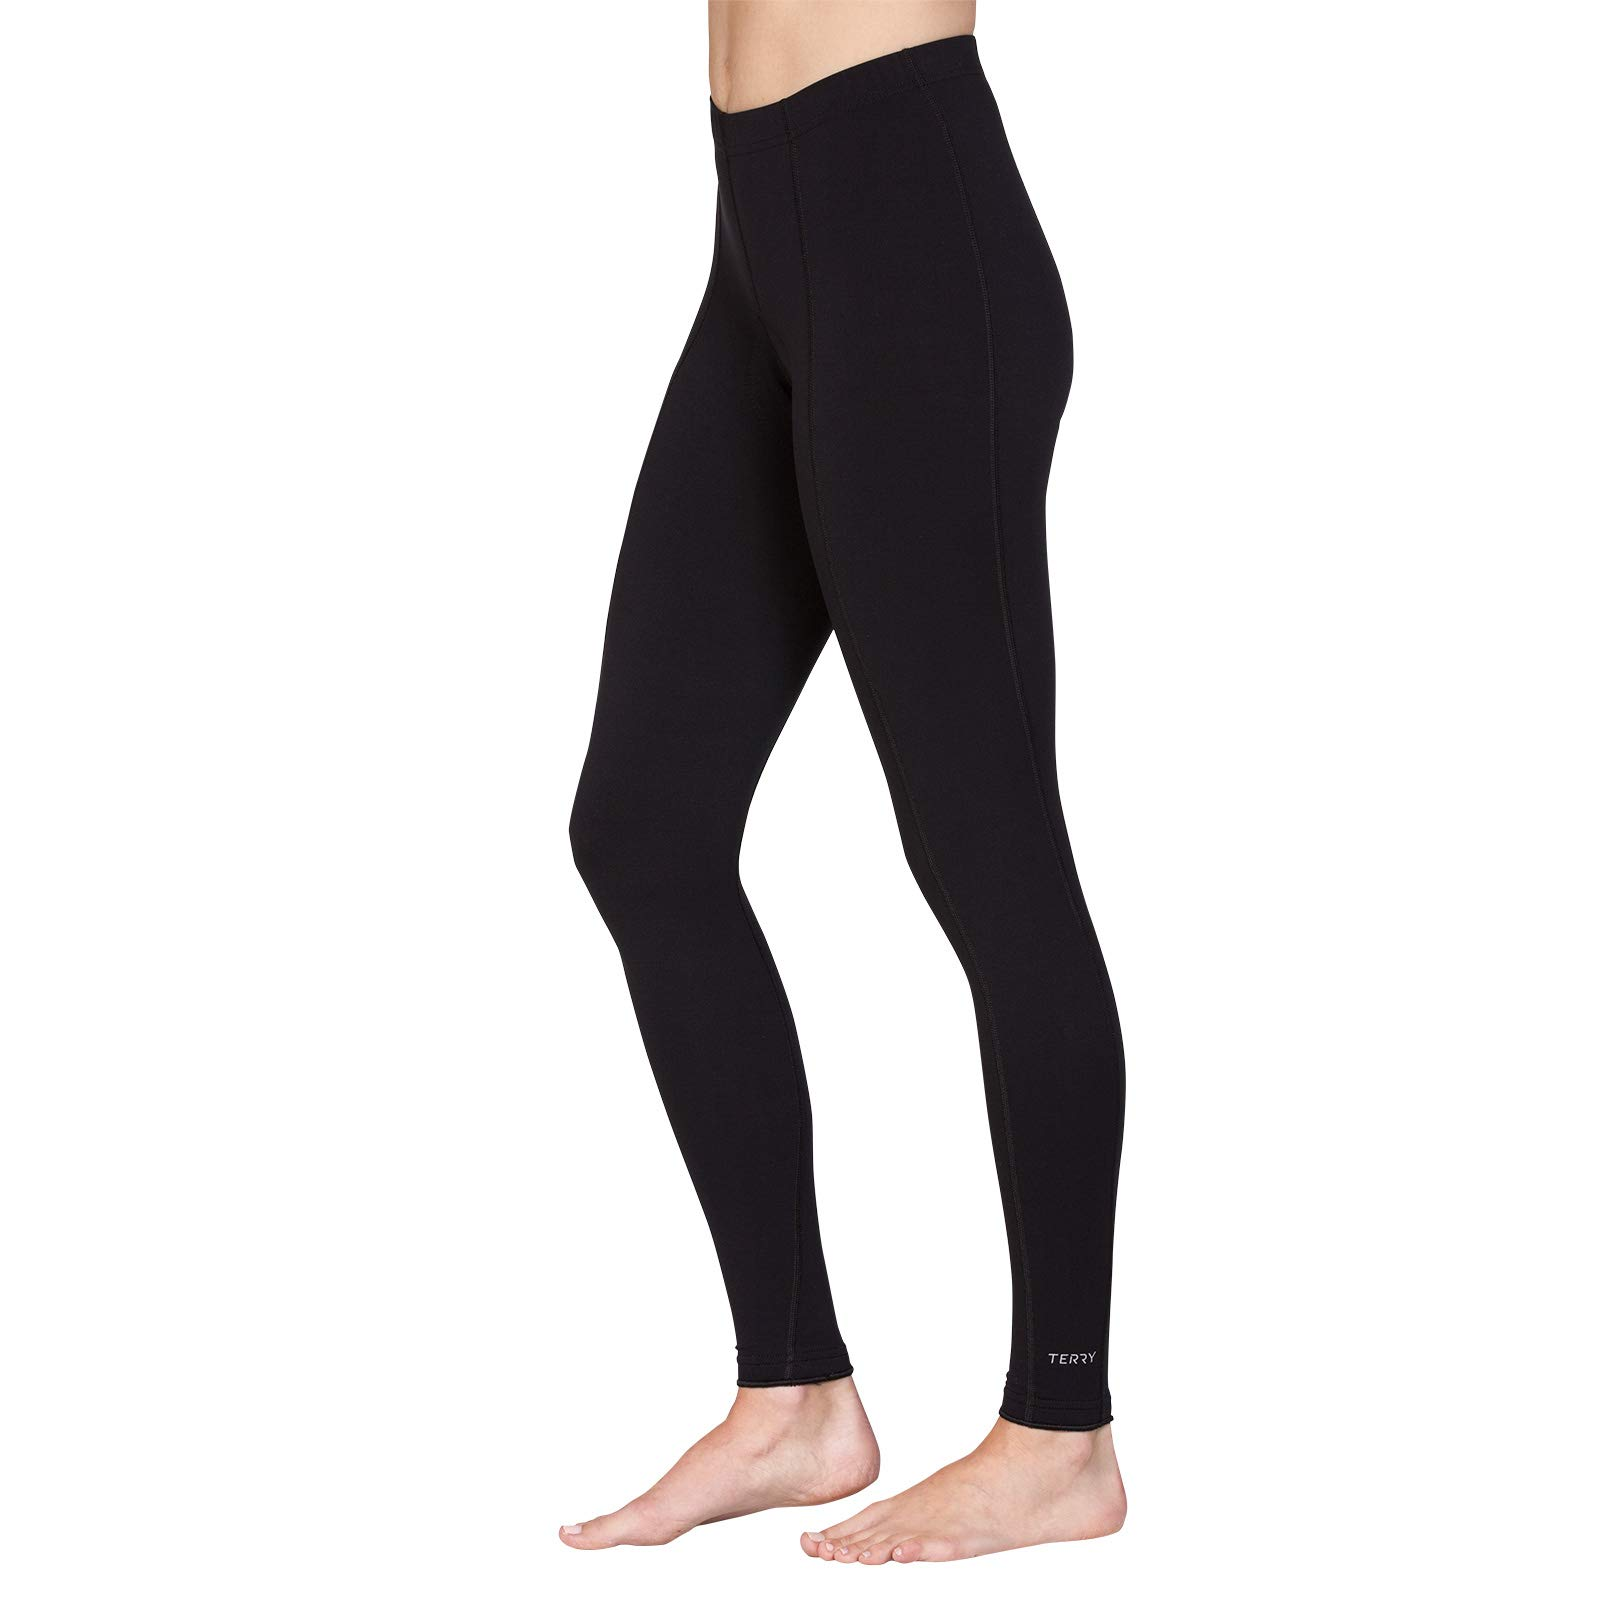 Terry Coolweather Cycling Tights for Women - Plus - Full Length - 29 inch Inseam - Black - 1X by Terry